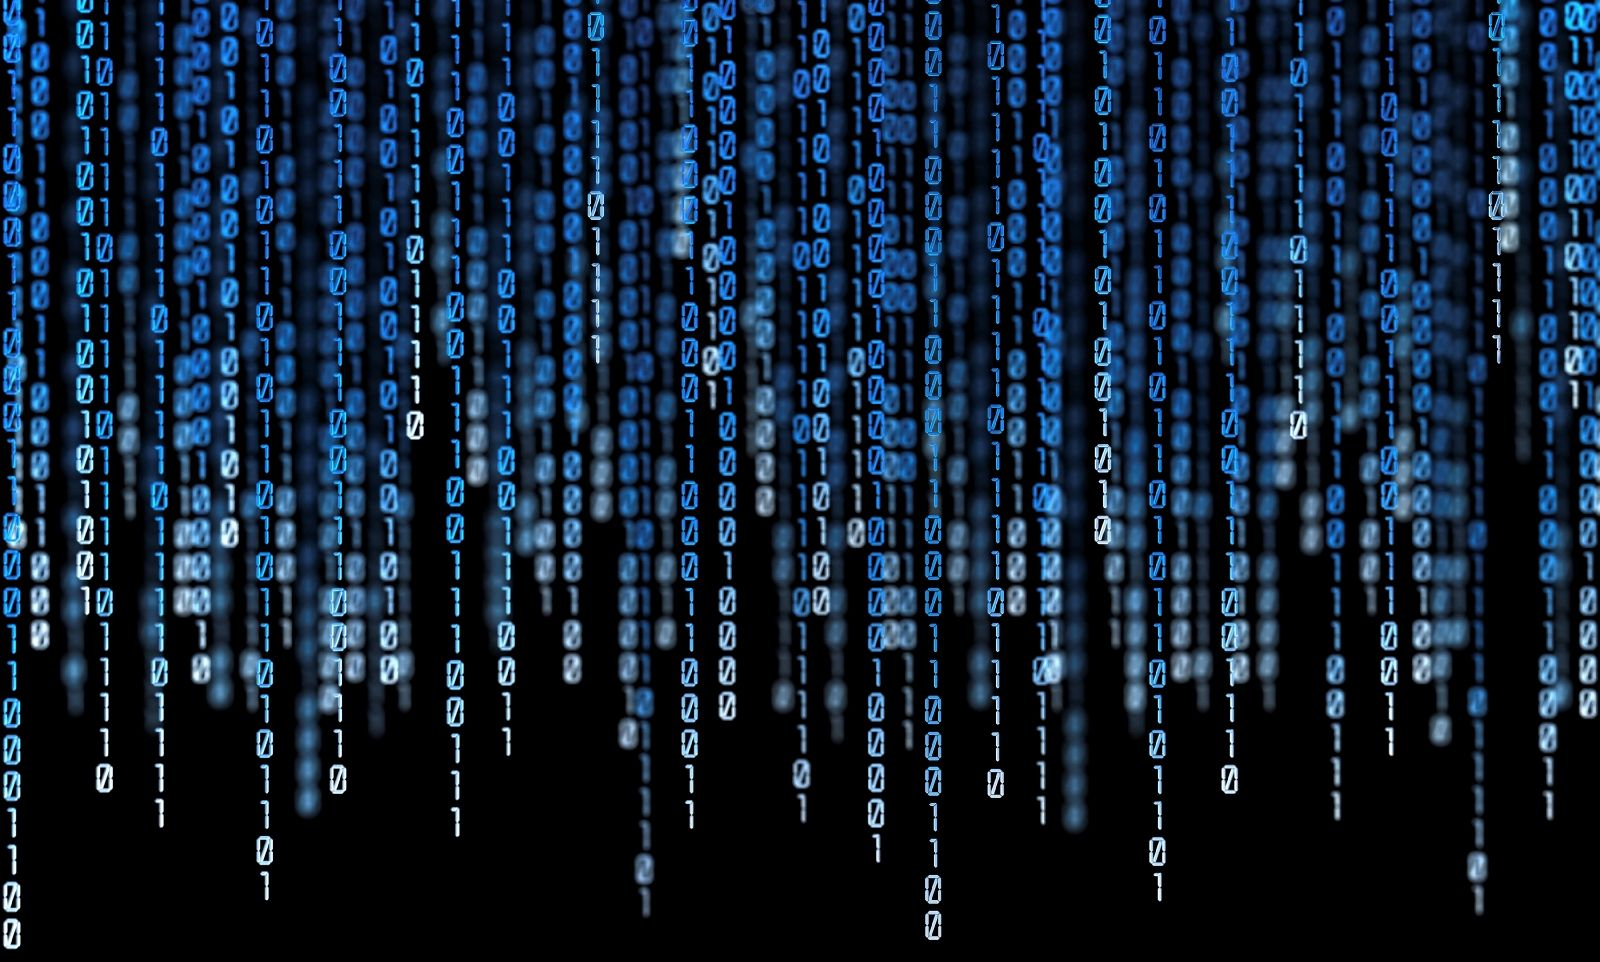 Big Data Wallpaper 255X586jpg   Picseriocom 1600x962